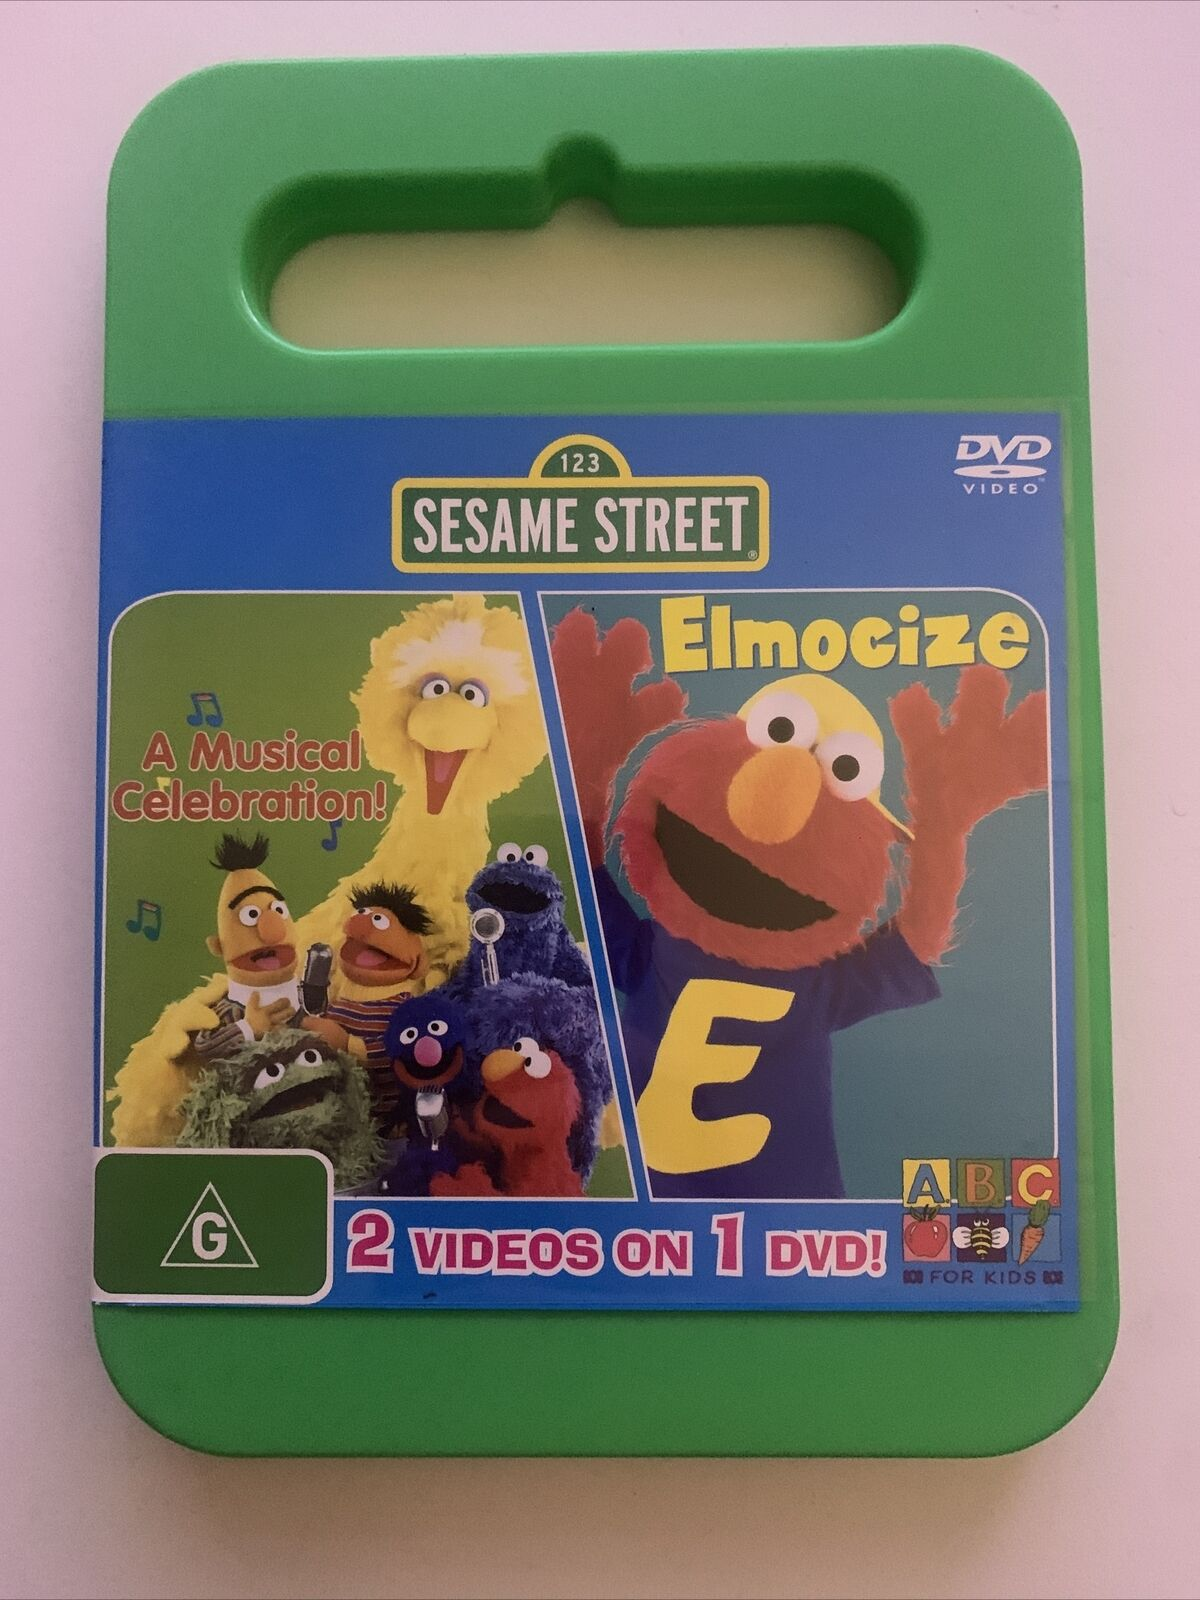 Sesamestreetamusicalcelebrationelmocize